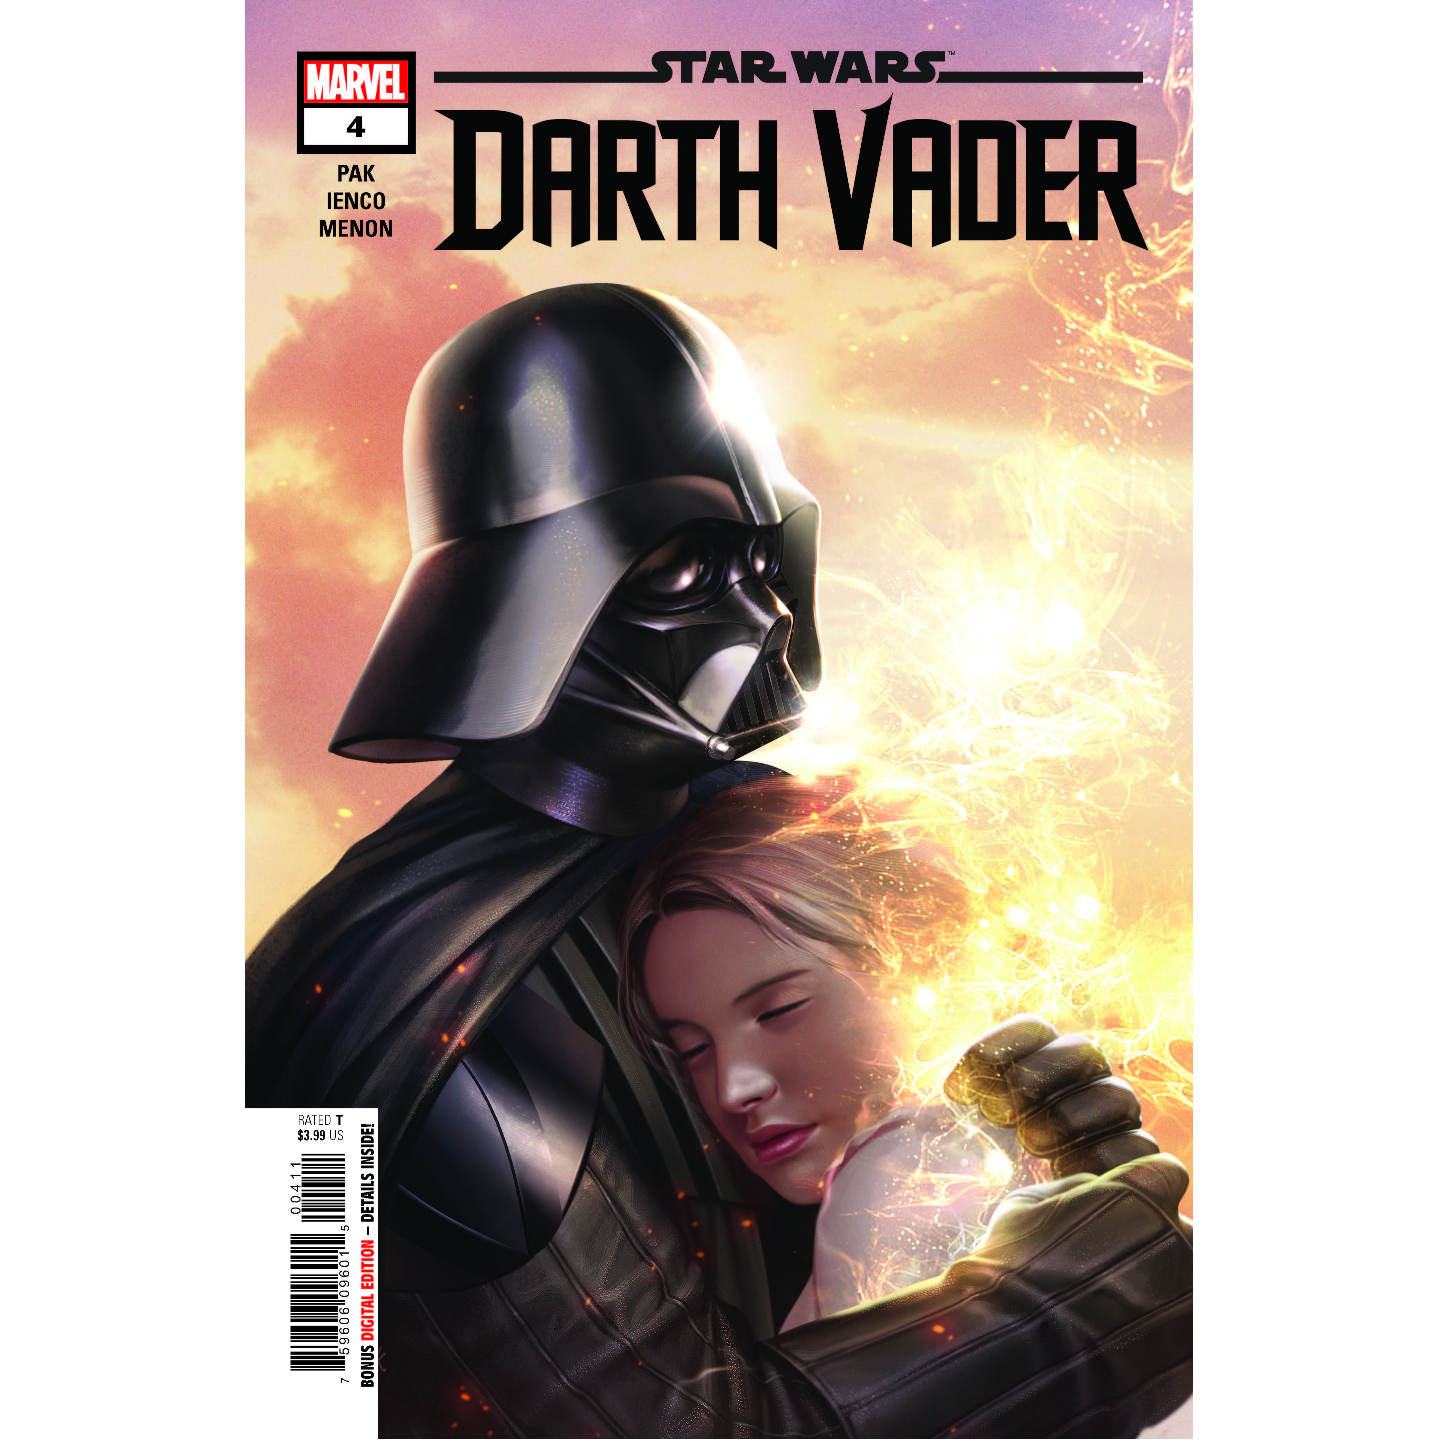 STAR WARS DARTH VADER #4